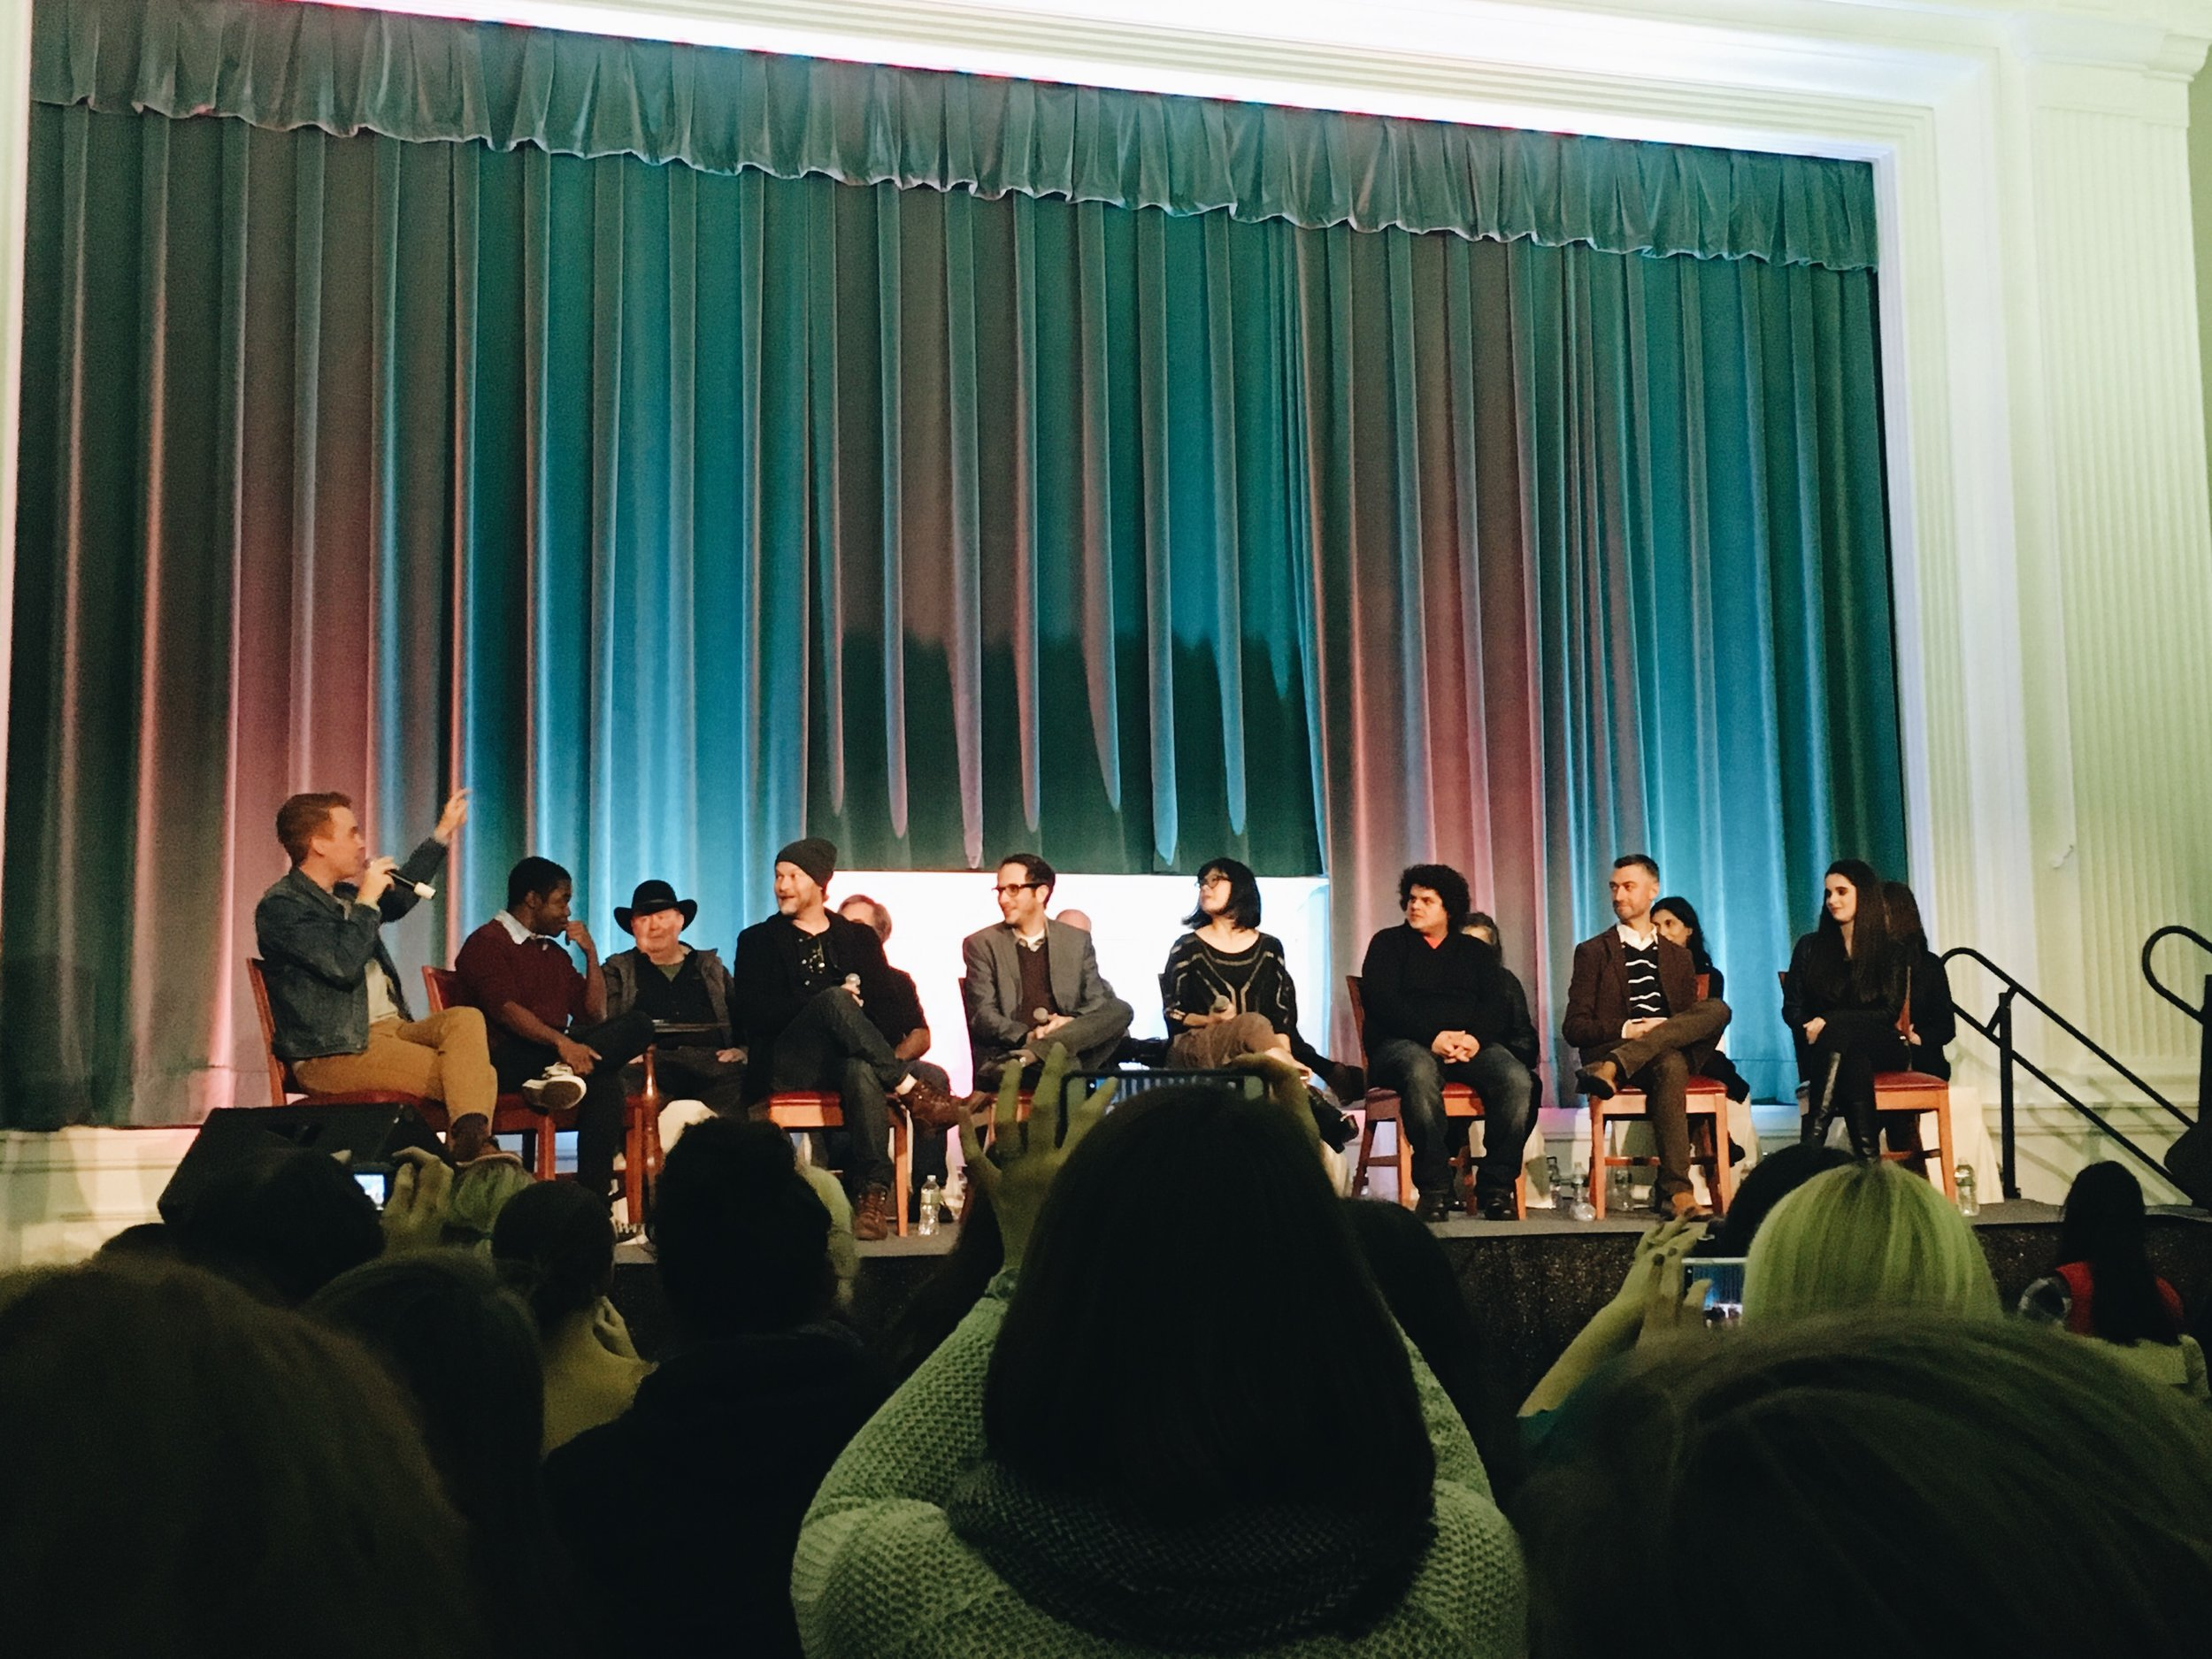 The Gilmore Guys moderated the cast panel, which was full of the lovable, unsung heros of Gilmore Girls--the townies.